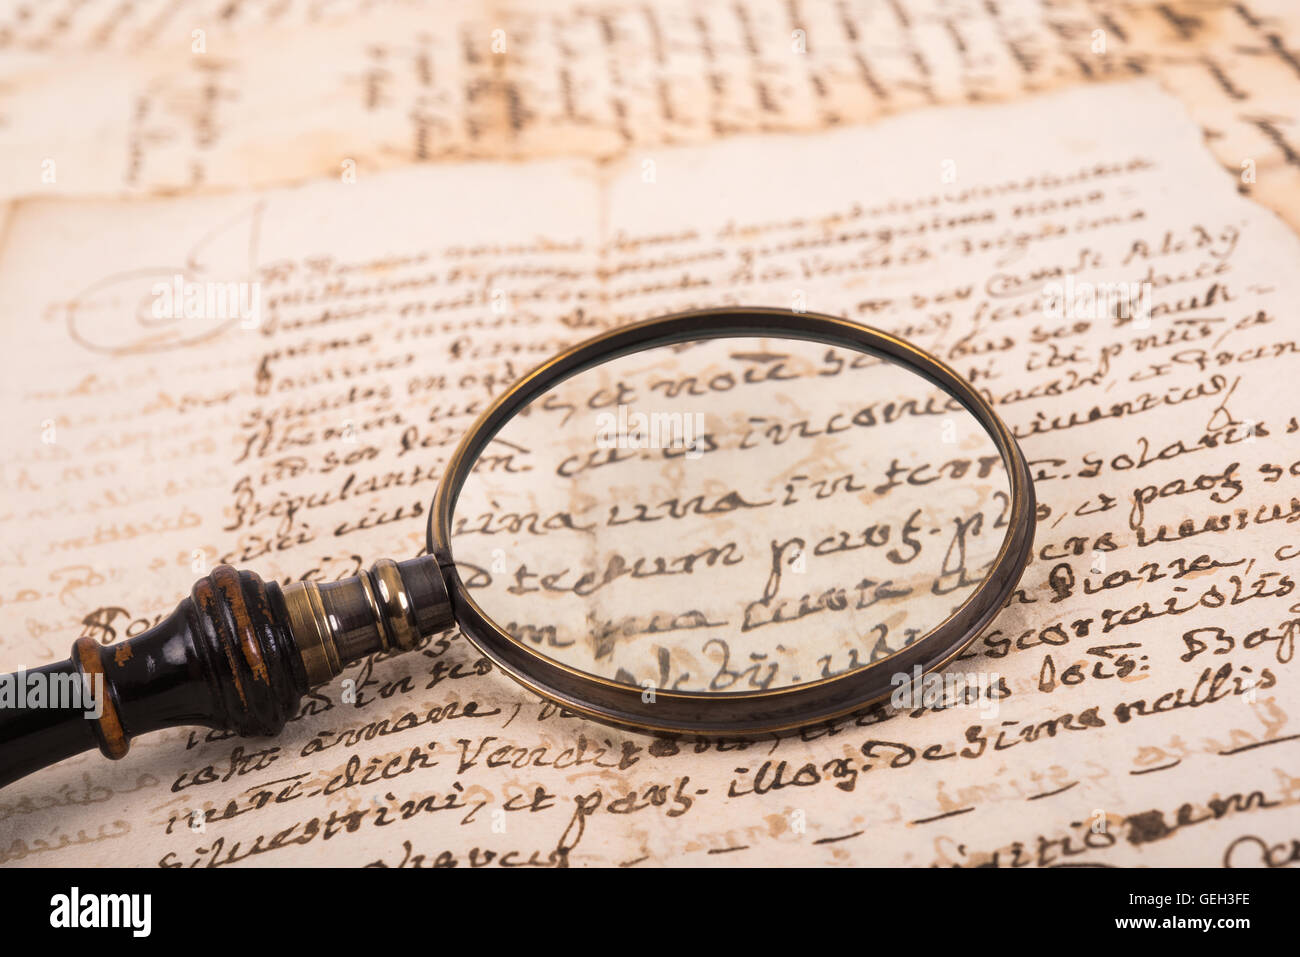 Old magnifying glass on old handwriting - Stock Image